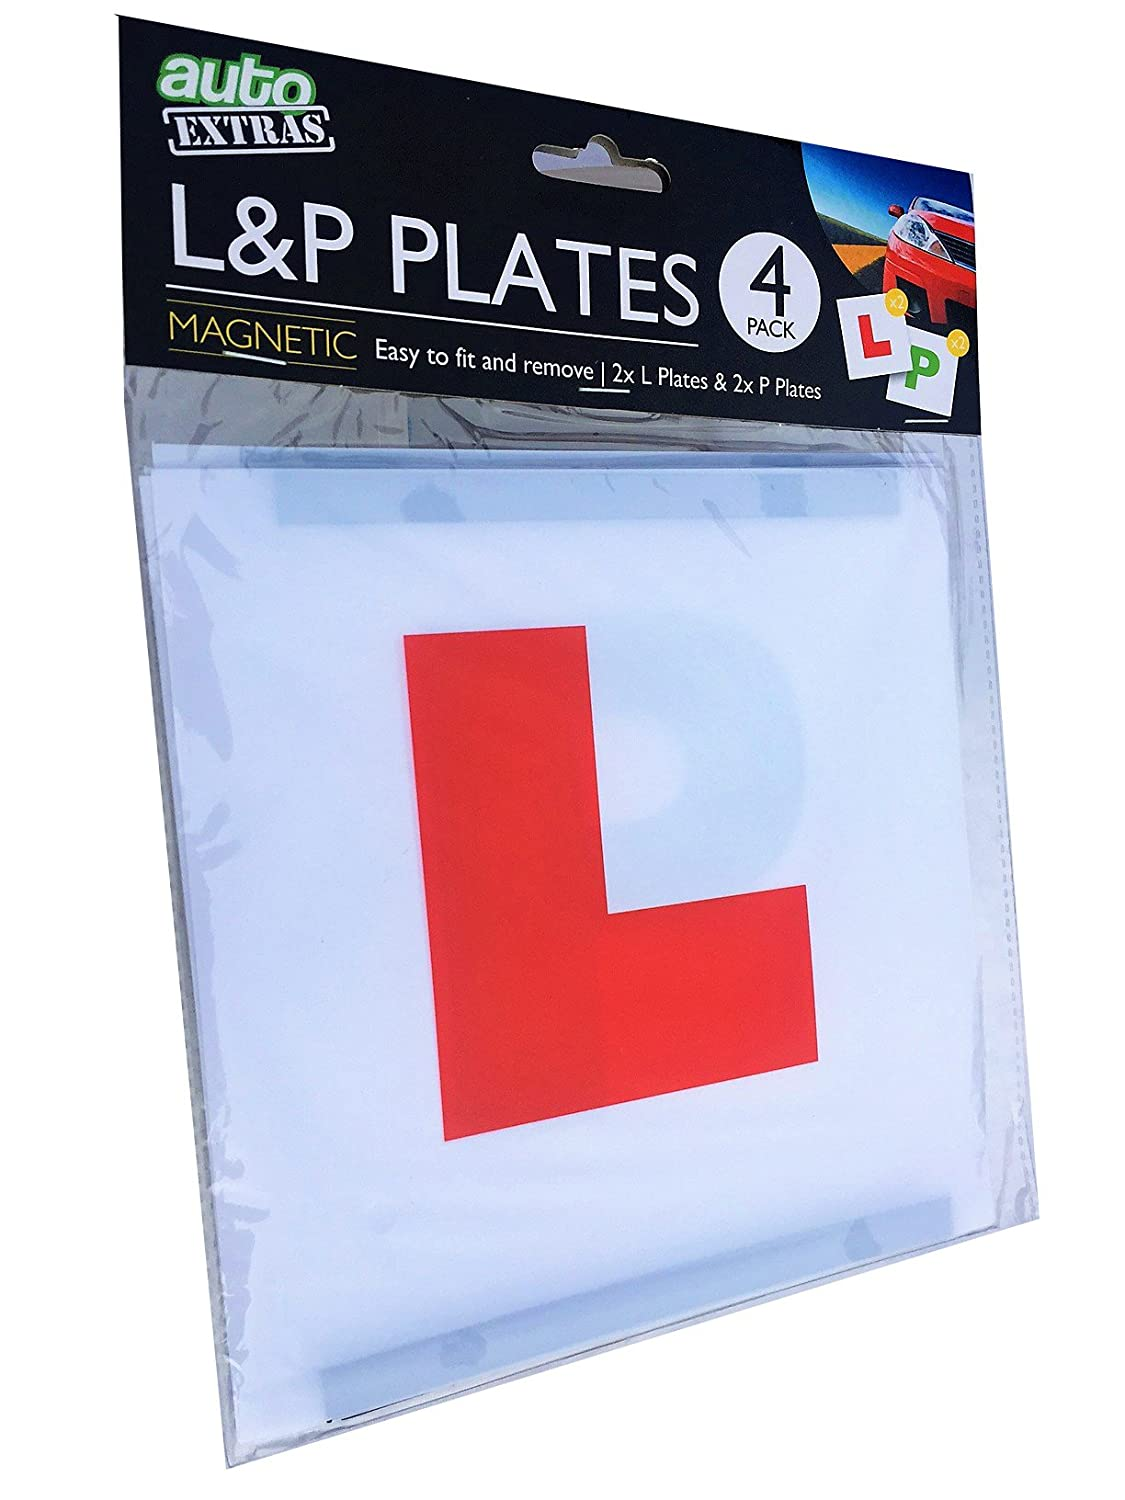 Learner and New driver Plates pack, 2 x L and 2 x P, magnetic